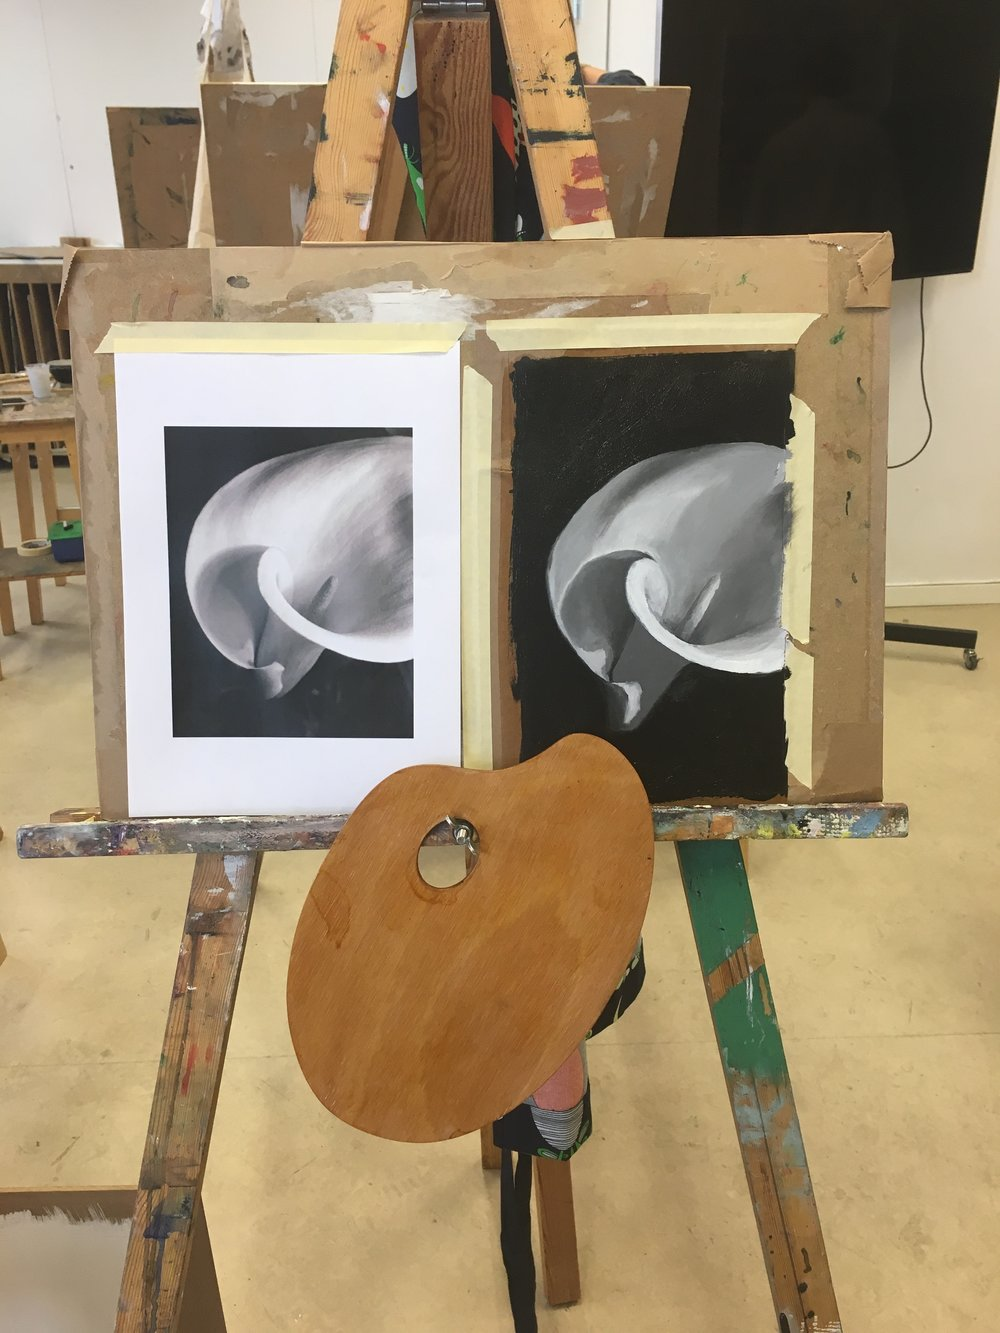 Black and white oil painting. Might I add that we oiled our own cheap artist palette - apparently companies jip amateur painters by selling fancy palettes when all you need is a sanded down one and can linseed oil it yourself!